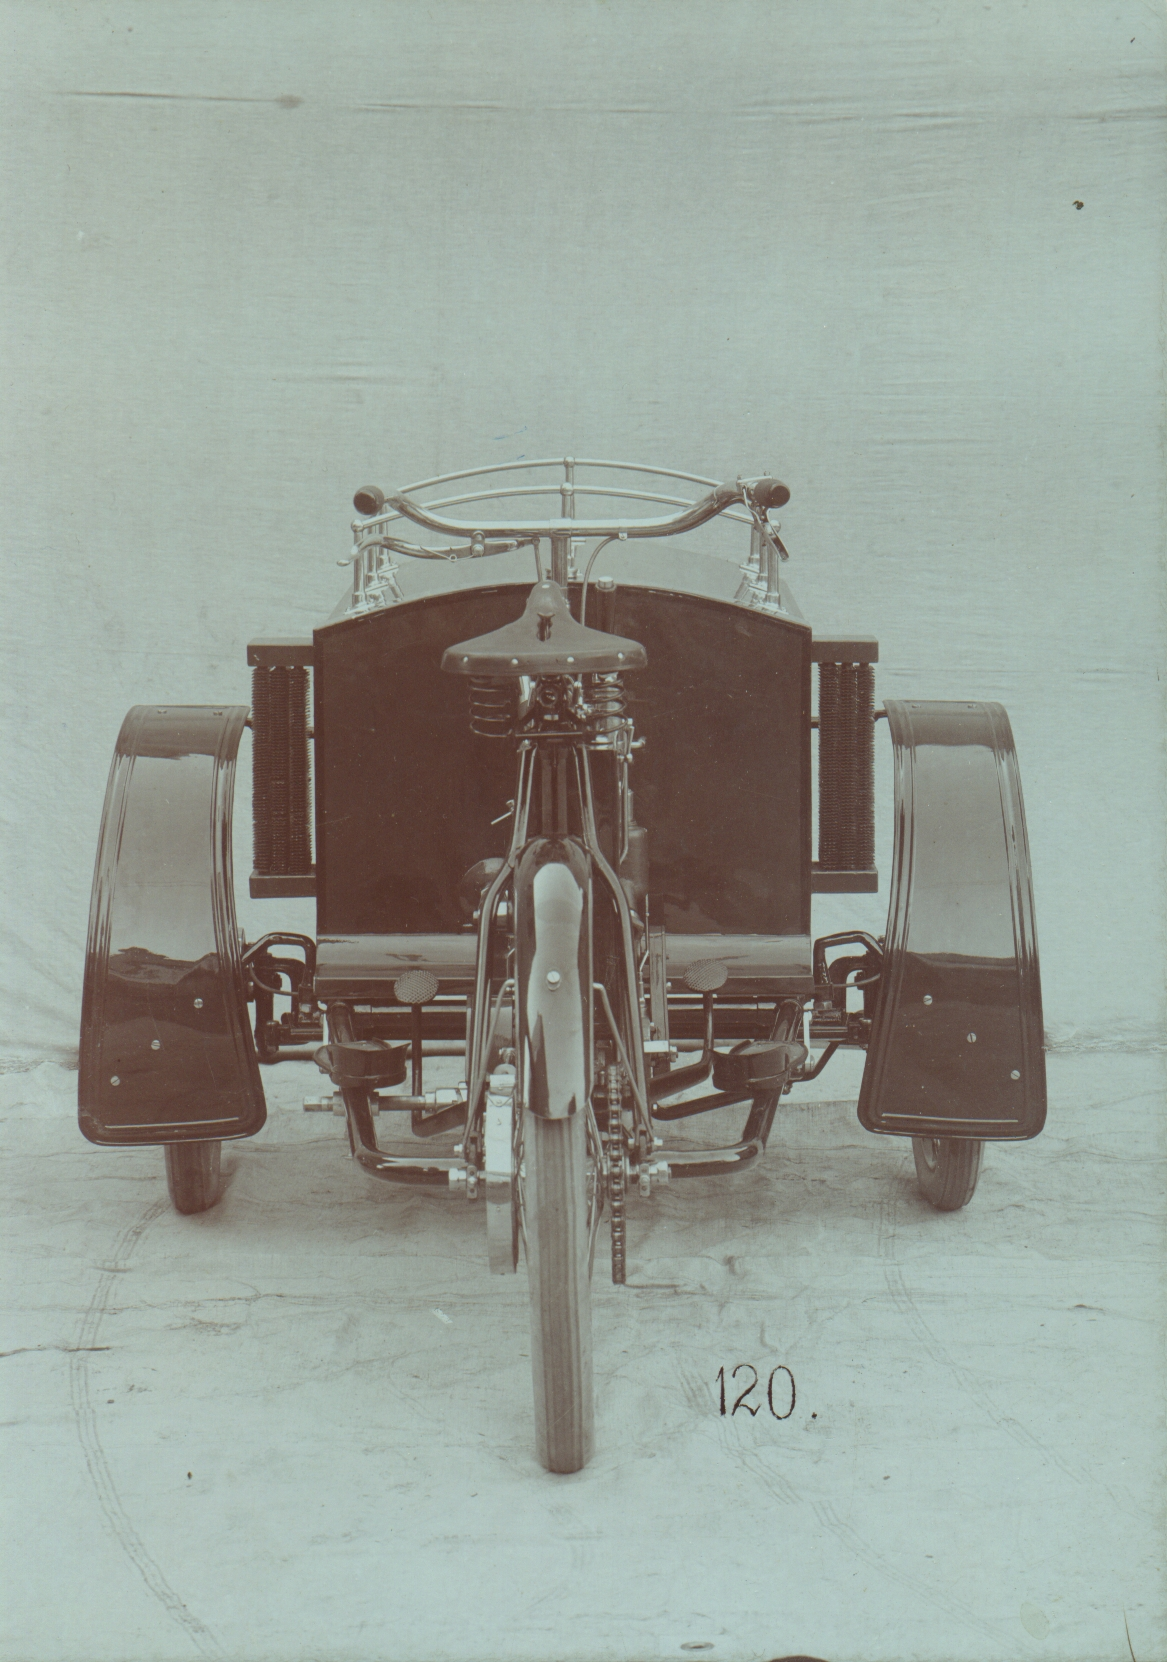 Lesser-known models from SKODA AUTO's 125-year history: The LW three-wheeler from Laurin & Klement - Image 1